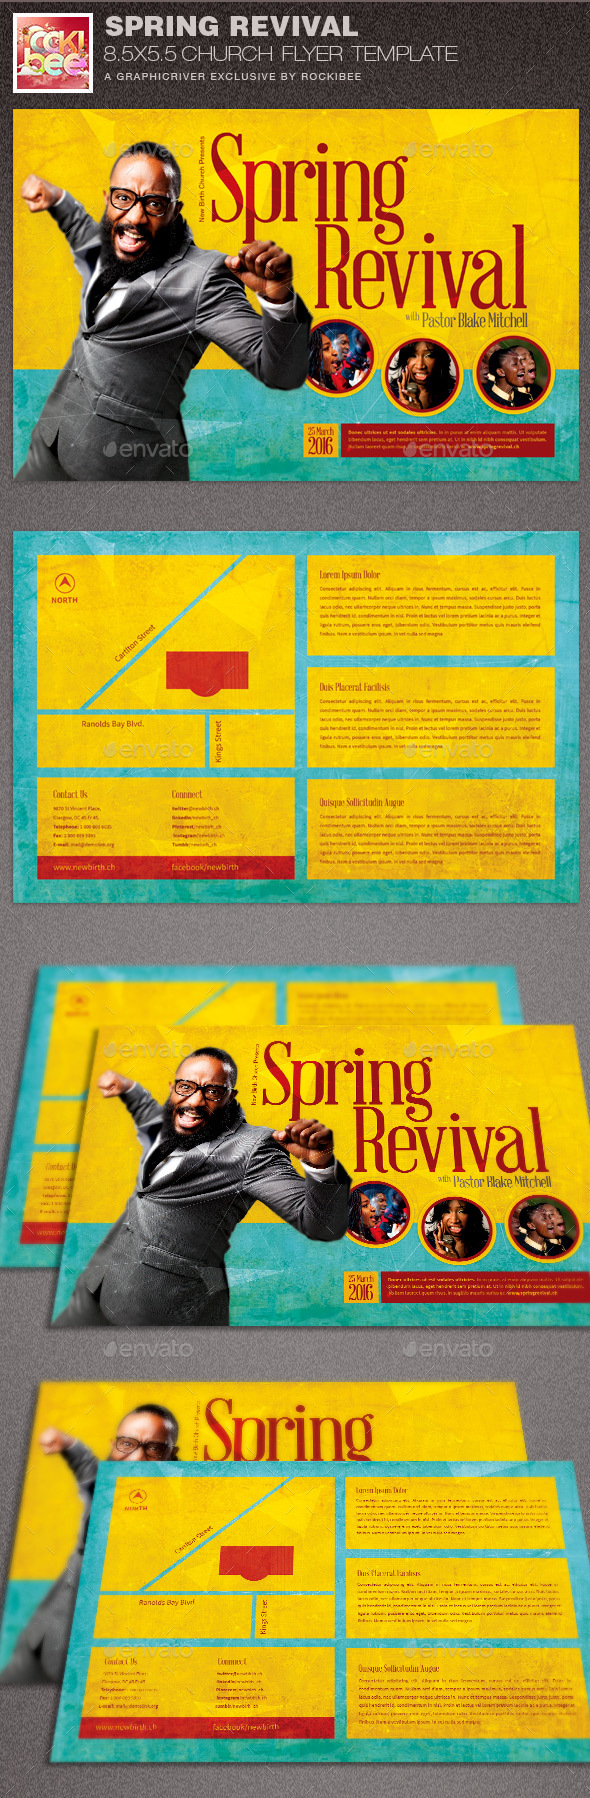 Spring Revival Church Flyer Template - Church Flyers